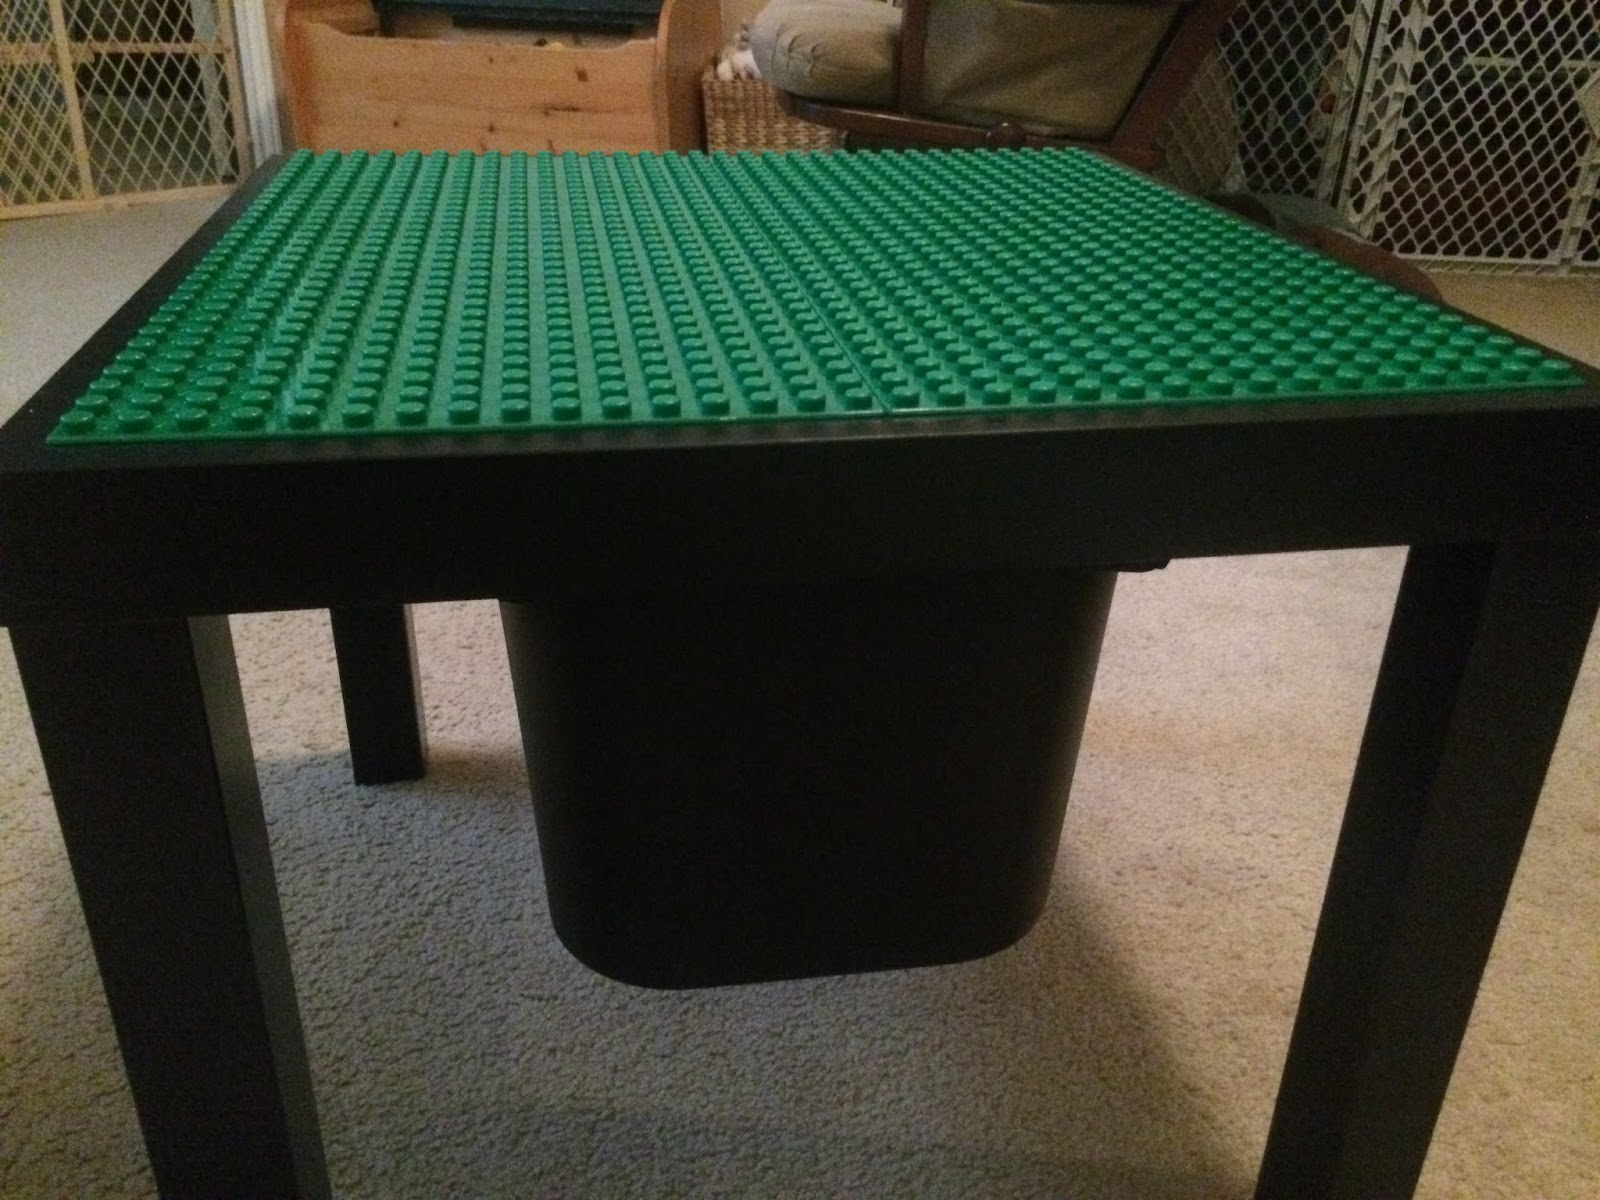 How to make an easy do it yourself Ikea Lego Table from an Ikea Lack table. Super simple and includes built in Trofast storage for bricks.